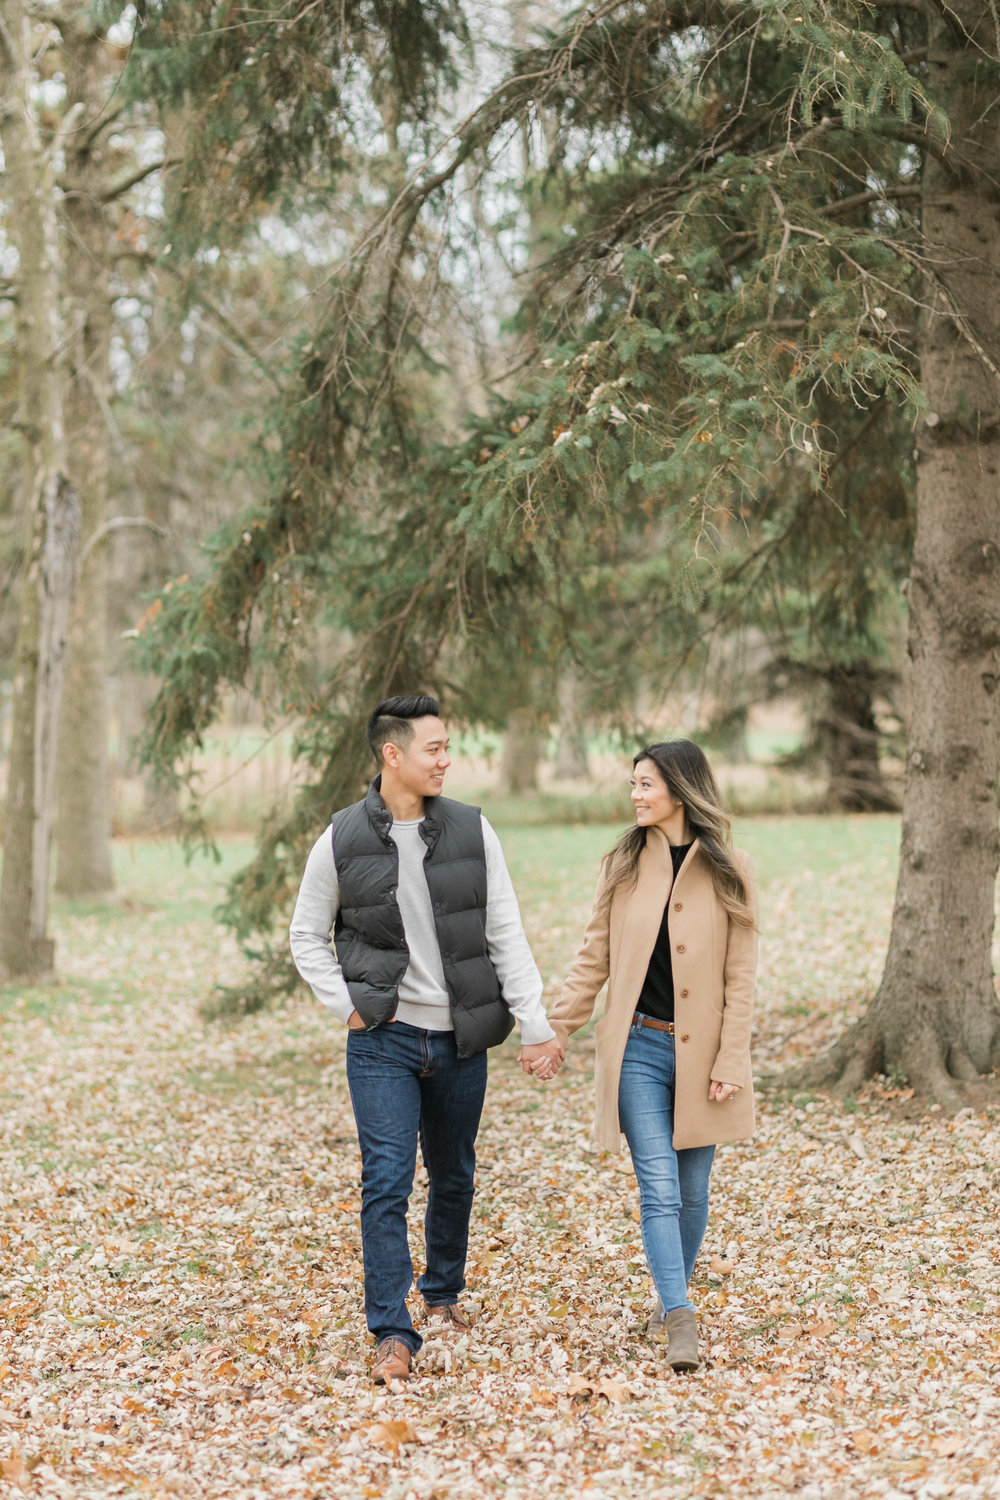 Julia___Rene_Engagement_Session___High._Res._Finals_0015.jpg